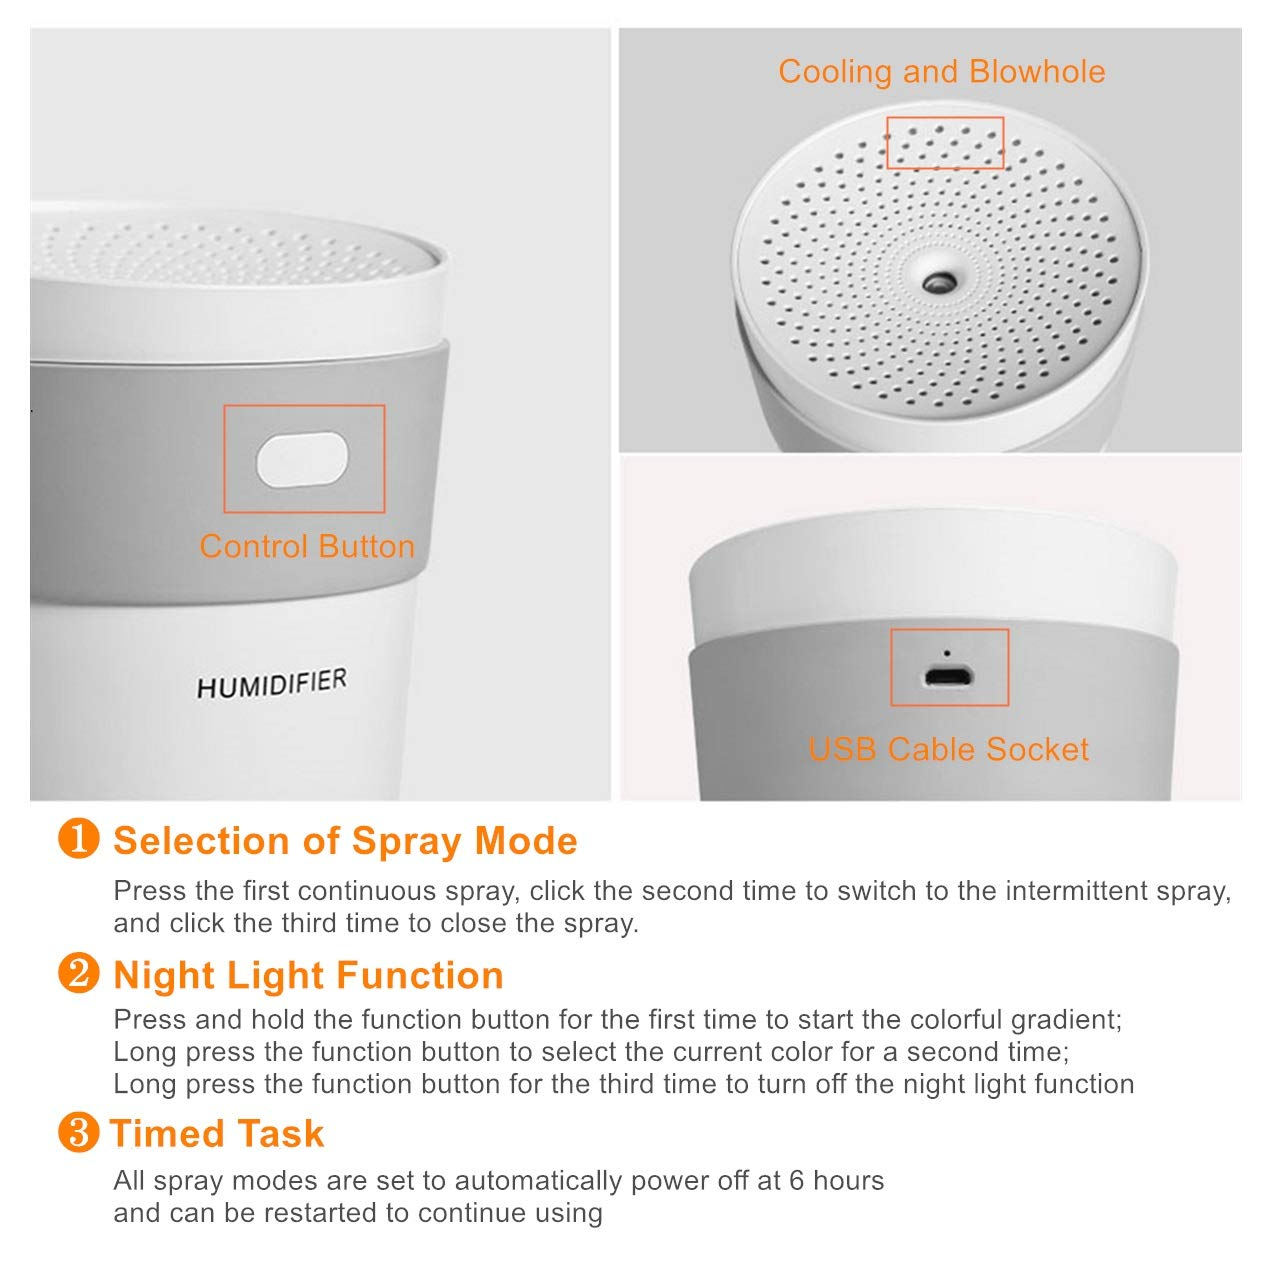 KIART Quiet Cool Mist Humidifier, 260 ml Mini Portable USB Humidifier with 7-color Night Light, Smart Sleep Mode, Auto Shut Off for Home Car Office Travelling